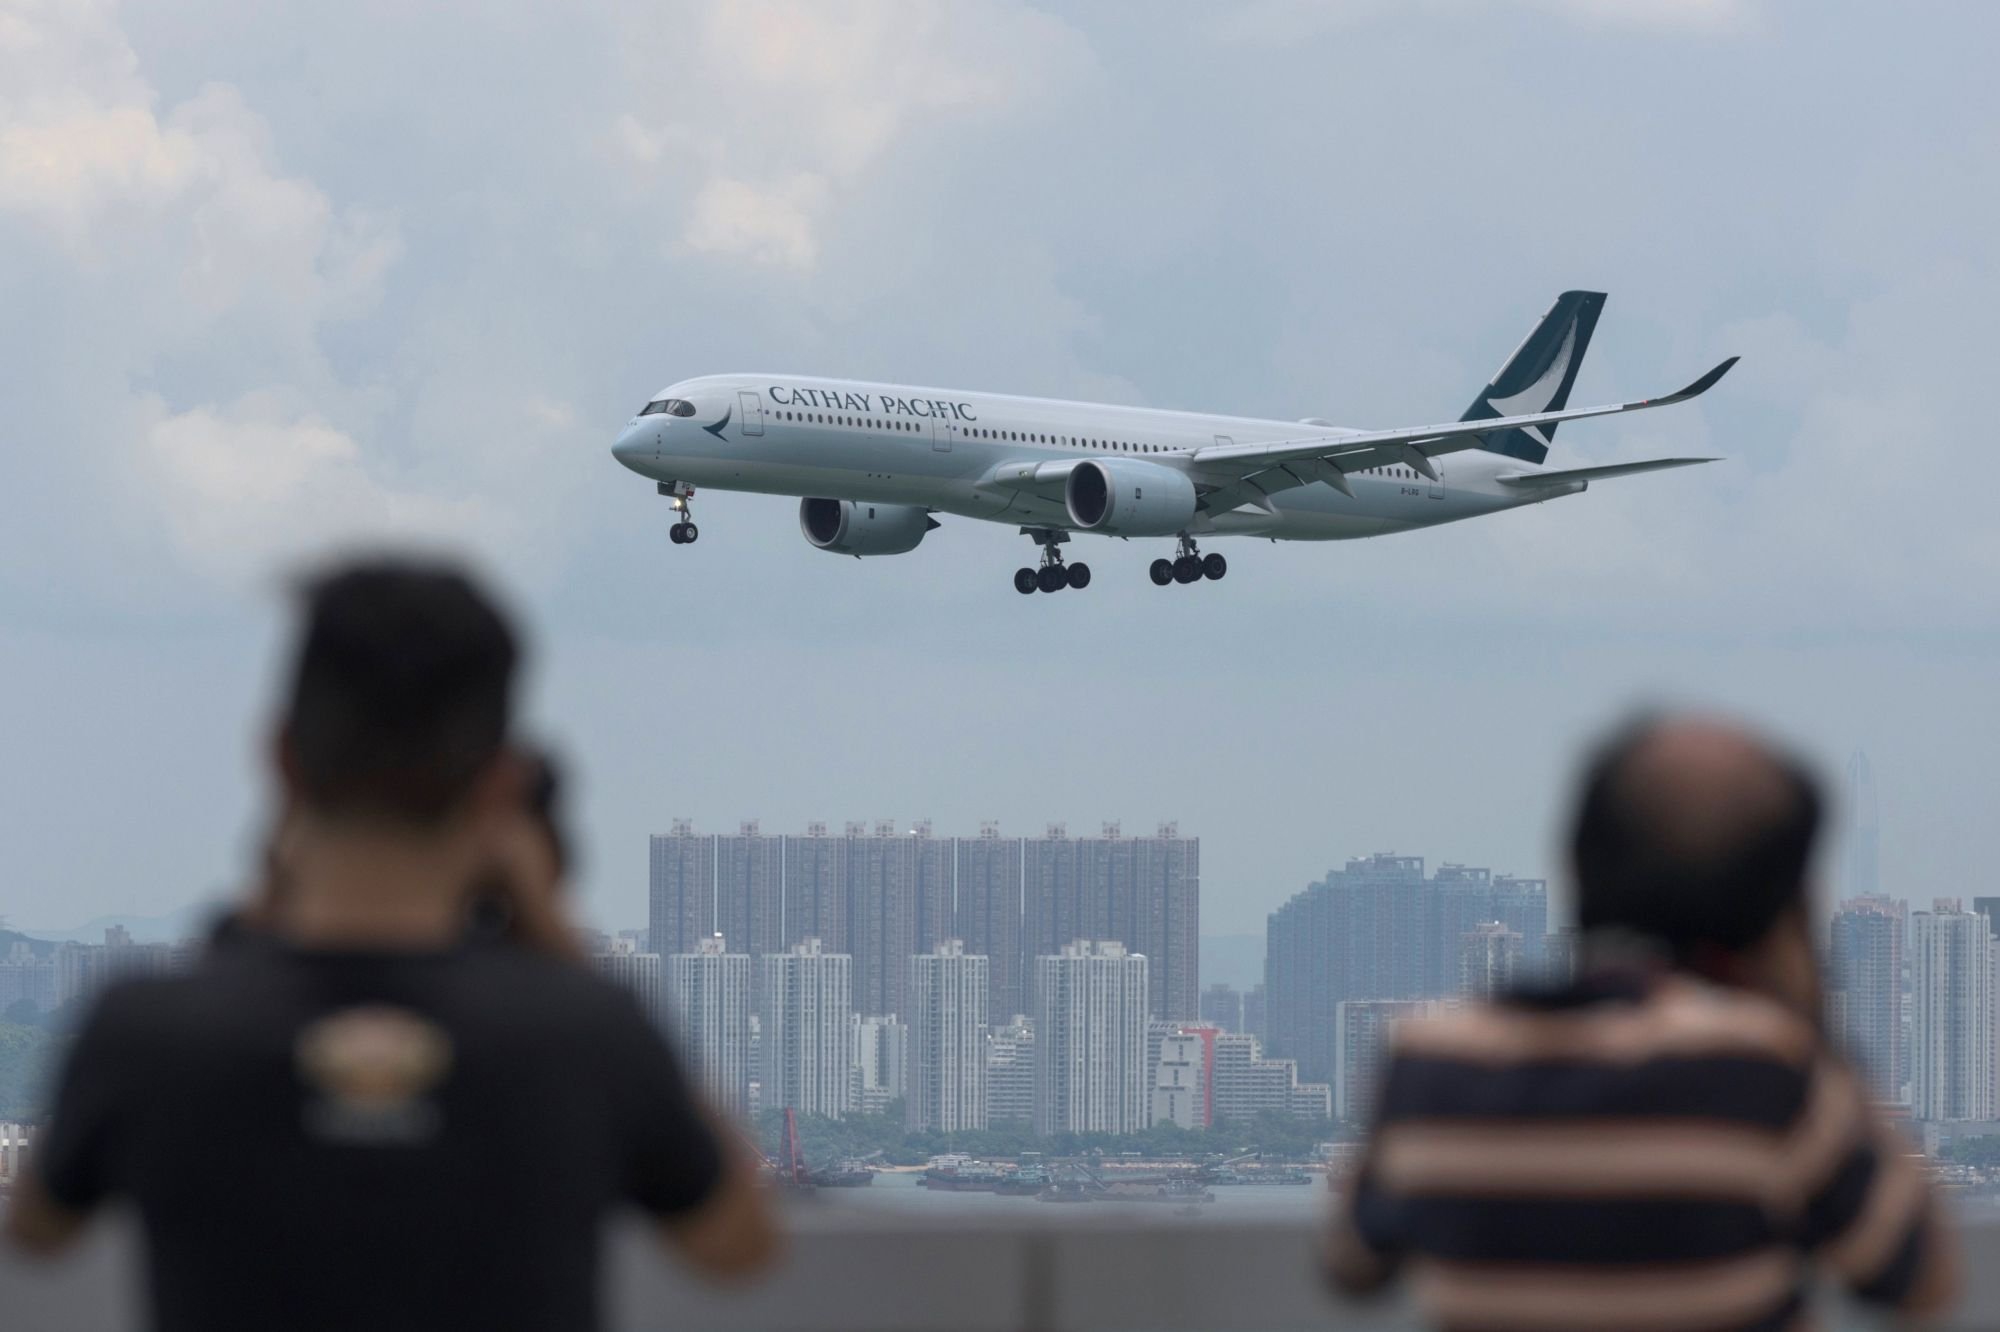 Hong Kong's flag carrier Cathay Pacific Airways Ltd. has flown headlong into a political storm thrown up by the city's swirling pro-democracy protests, as Beijing turns the screws on any company deemed sympathetic to the movement. | AFP-JIJI